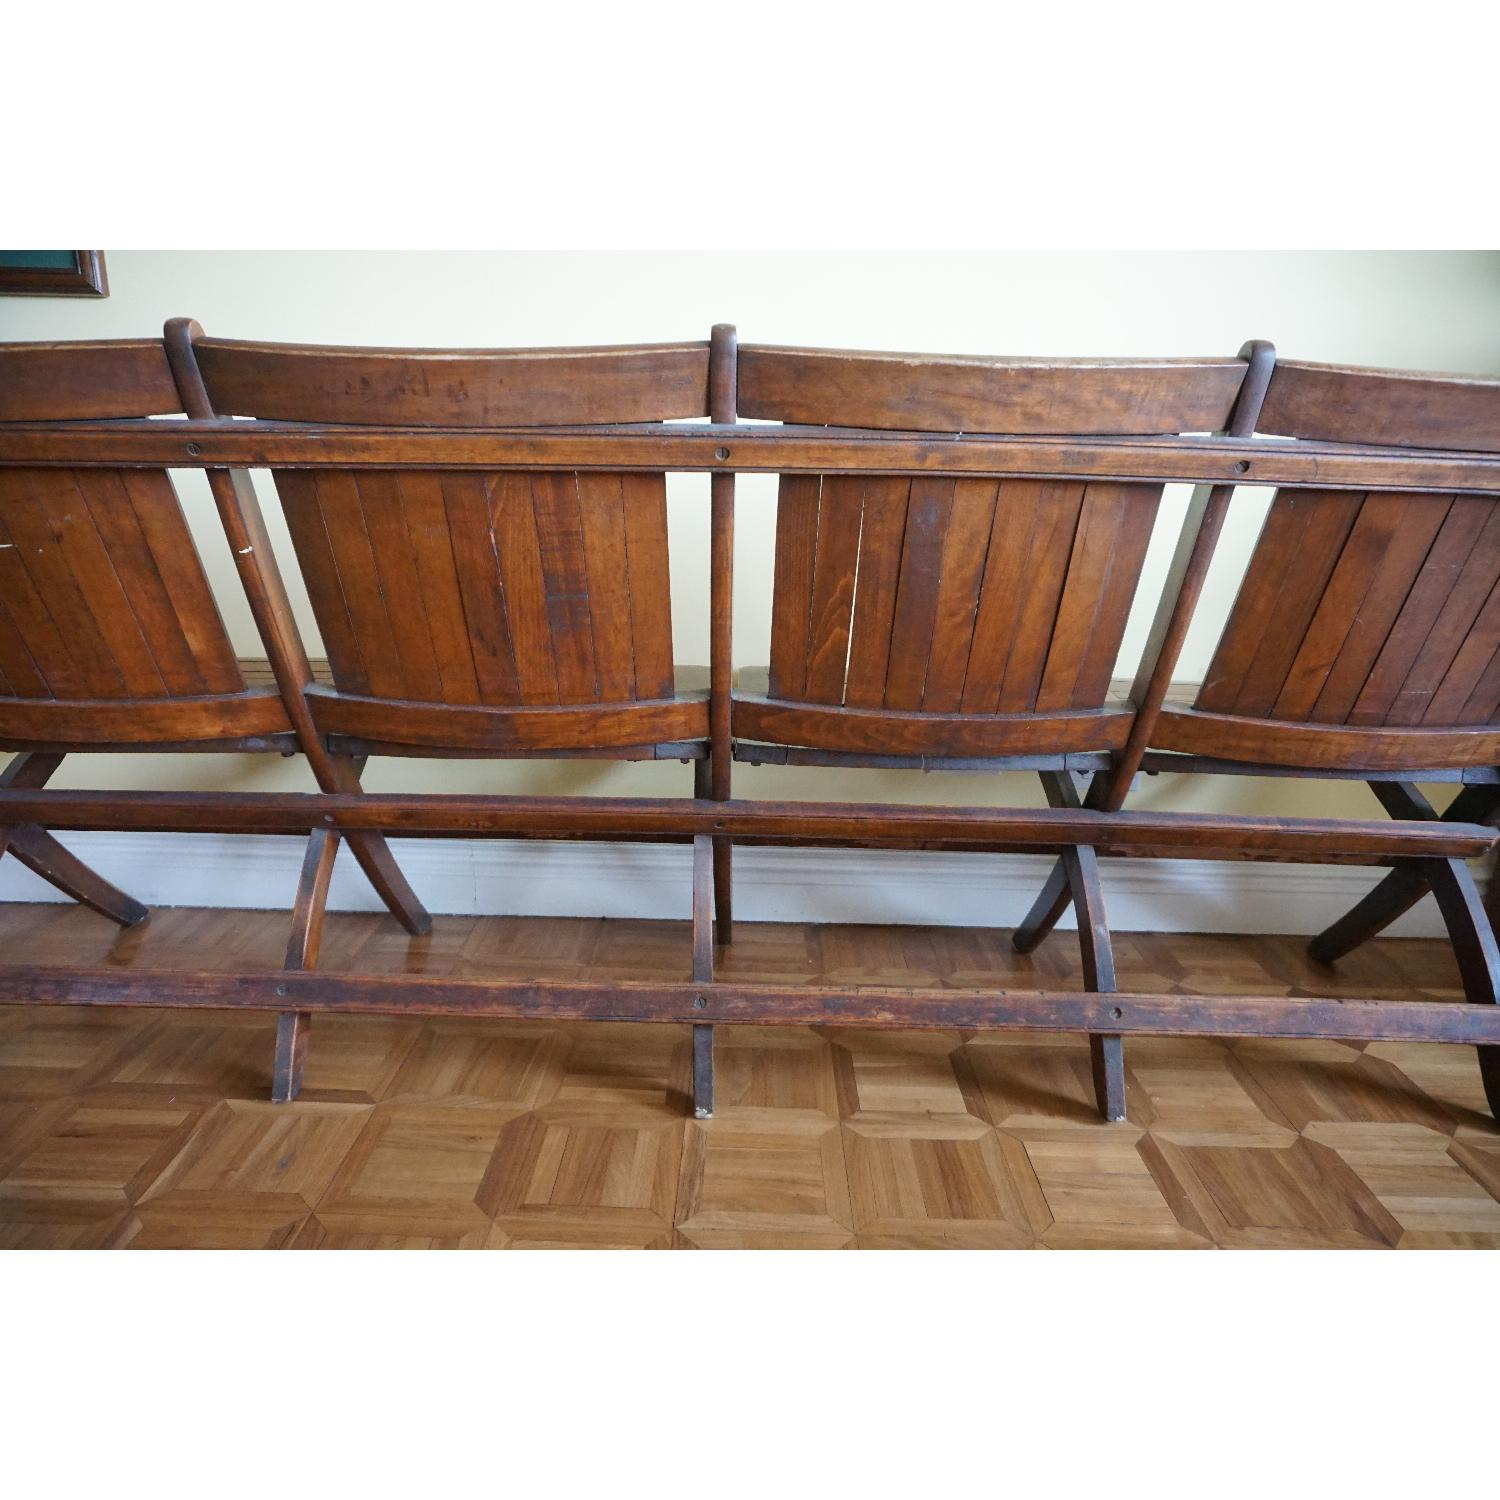 Vintage Harlem Movie Theater Wooden Bench Seats - image-7